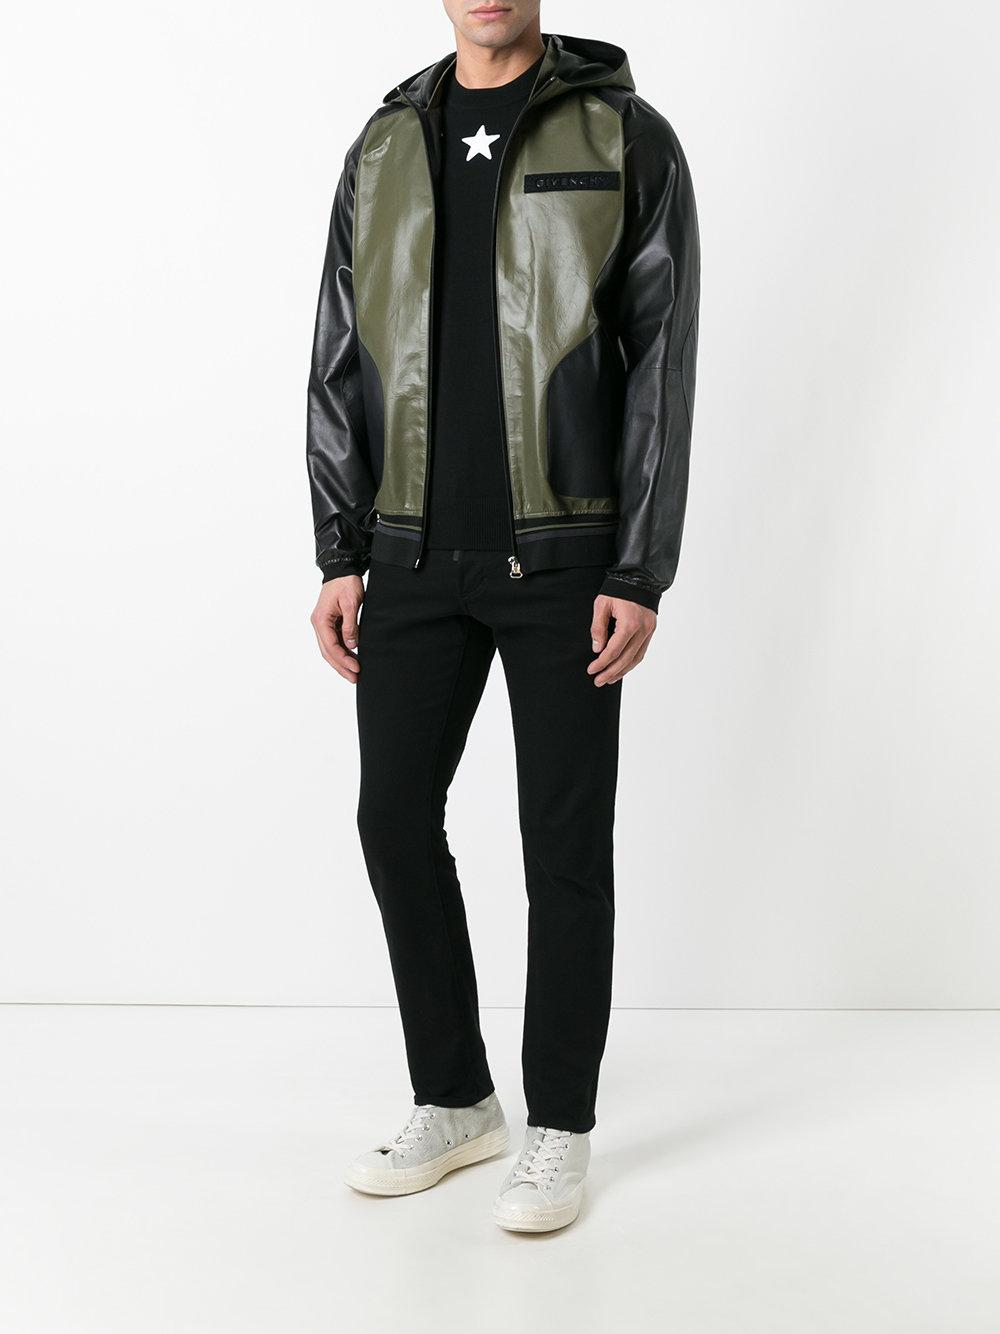 Givenchy Hooded Leather Jacket In Green For Men Lyst